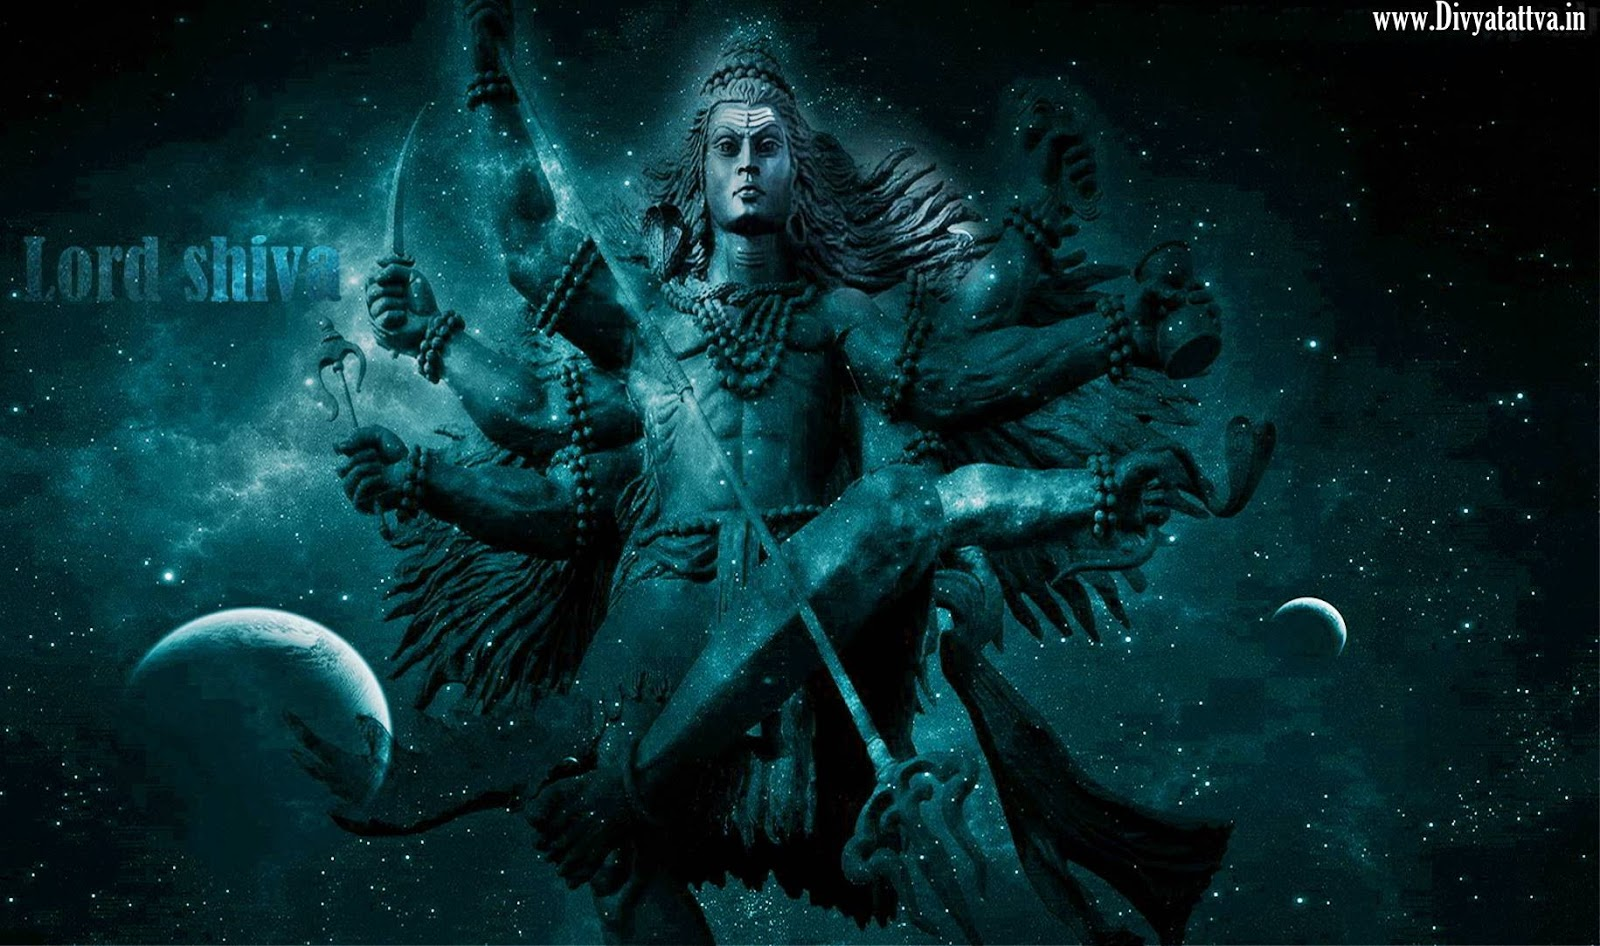 Best Wallpaper Lord Shiv - shiv-shambhu-wallpaper-god-shiva-wallpaper-divyatattva-india-hindu-gods  Pic_924751.jpg